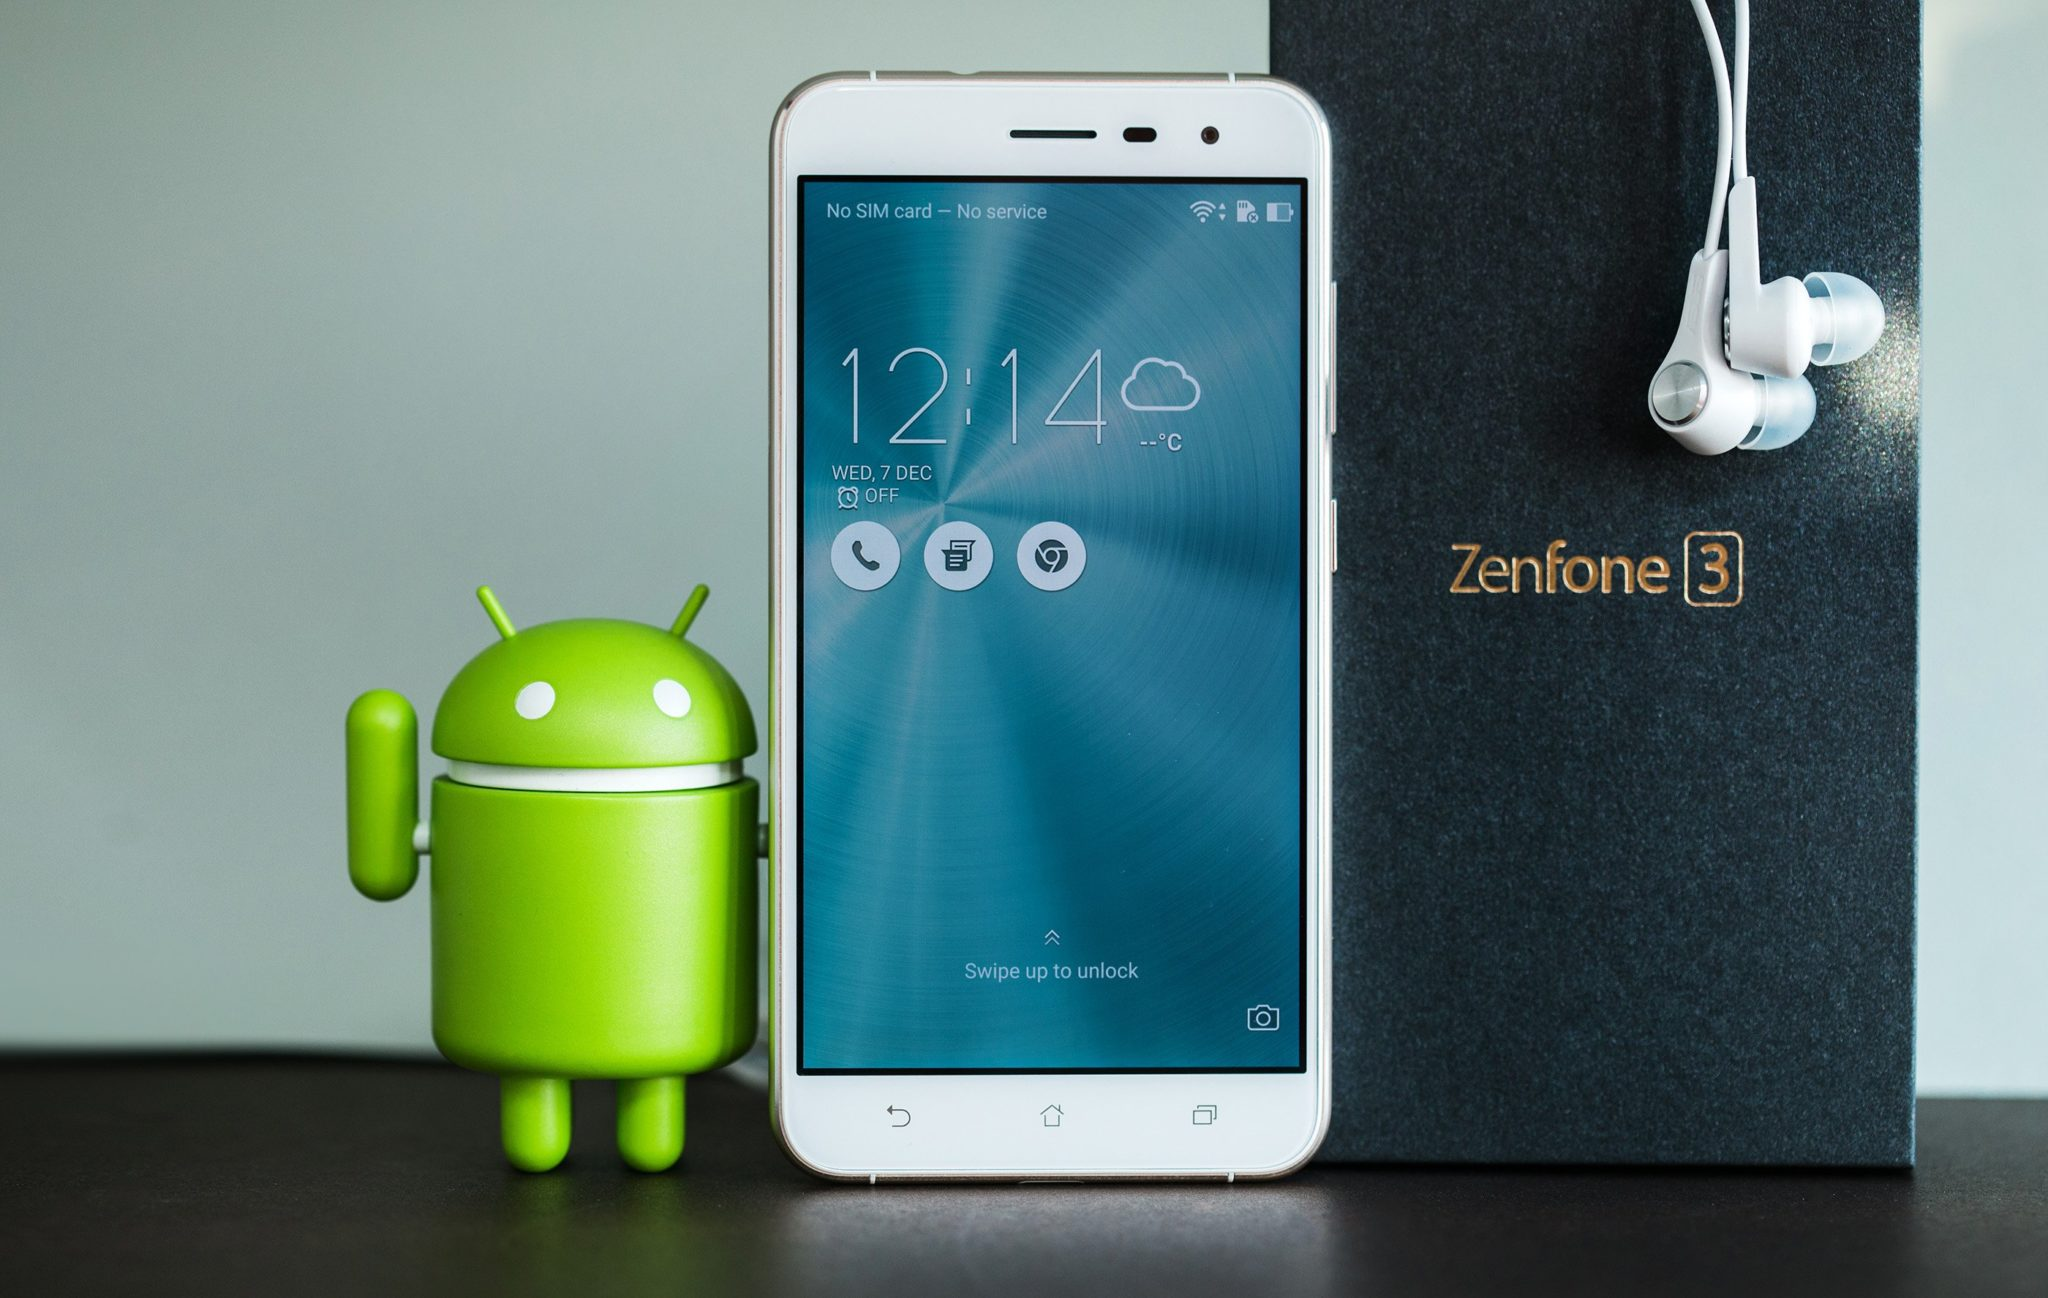 Asus ZenFone 3 High Performance